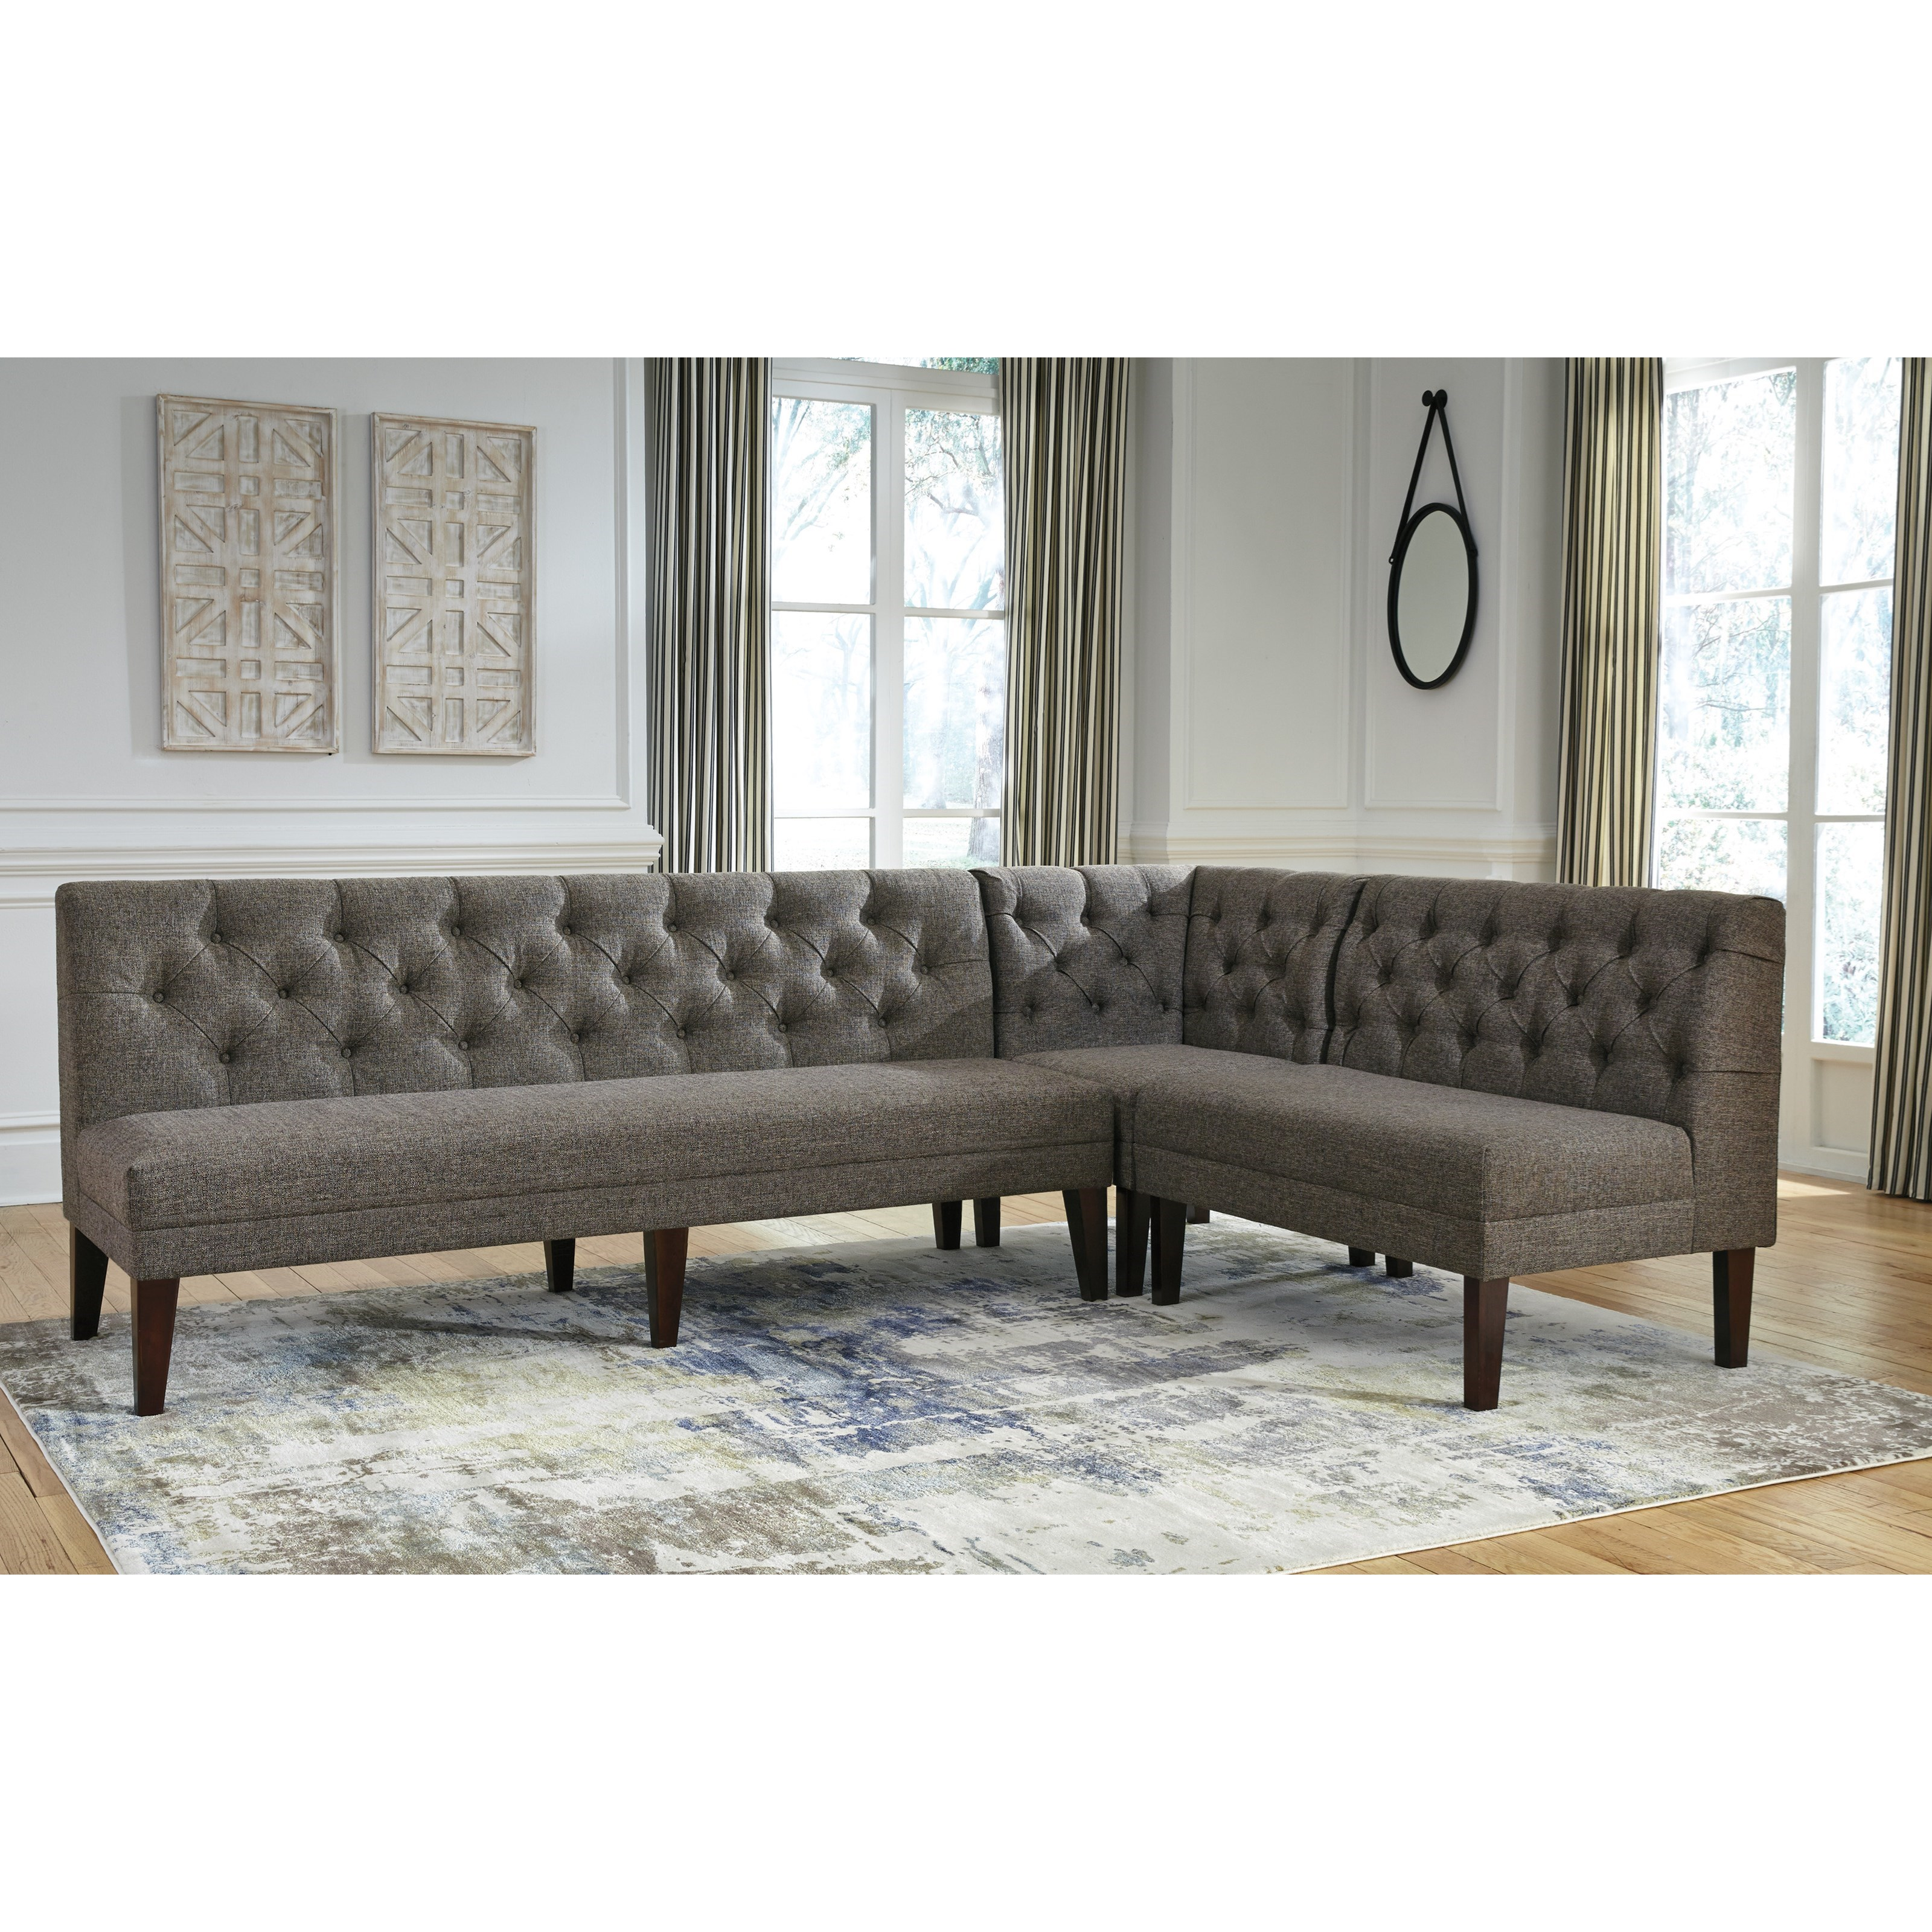 Tripton Extra Large Upholstered Bench: Ashley Signature Design Tripton D530-09 Extra Large